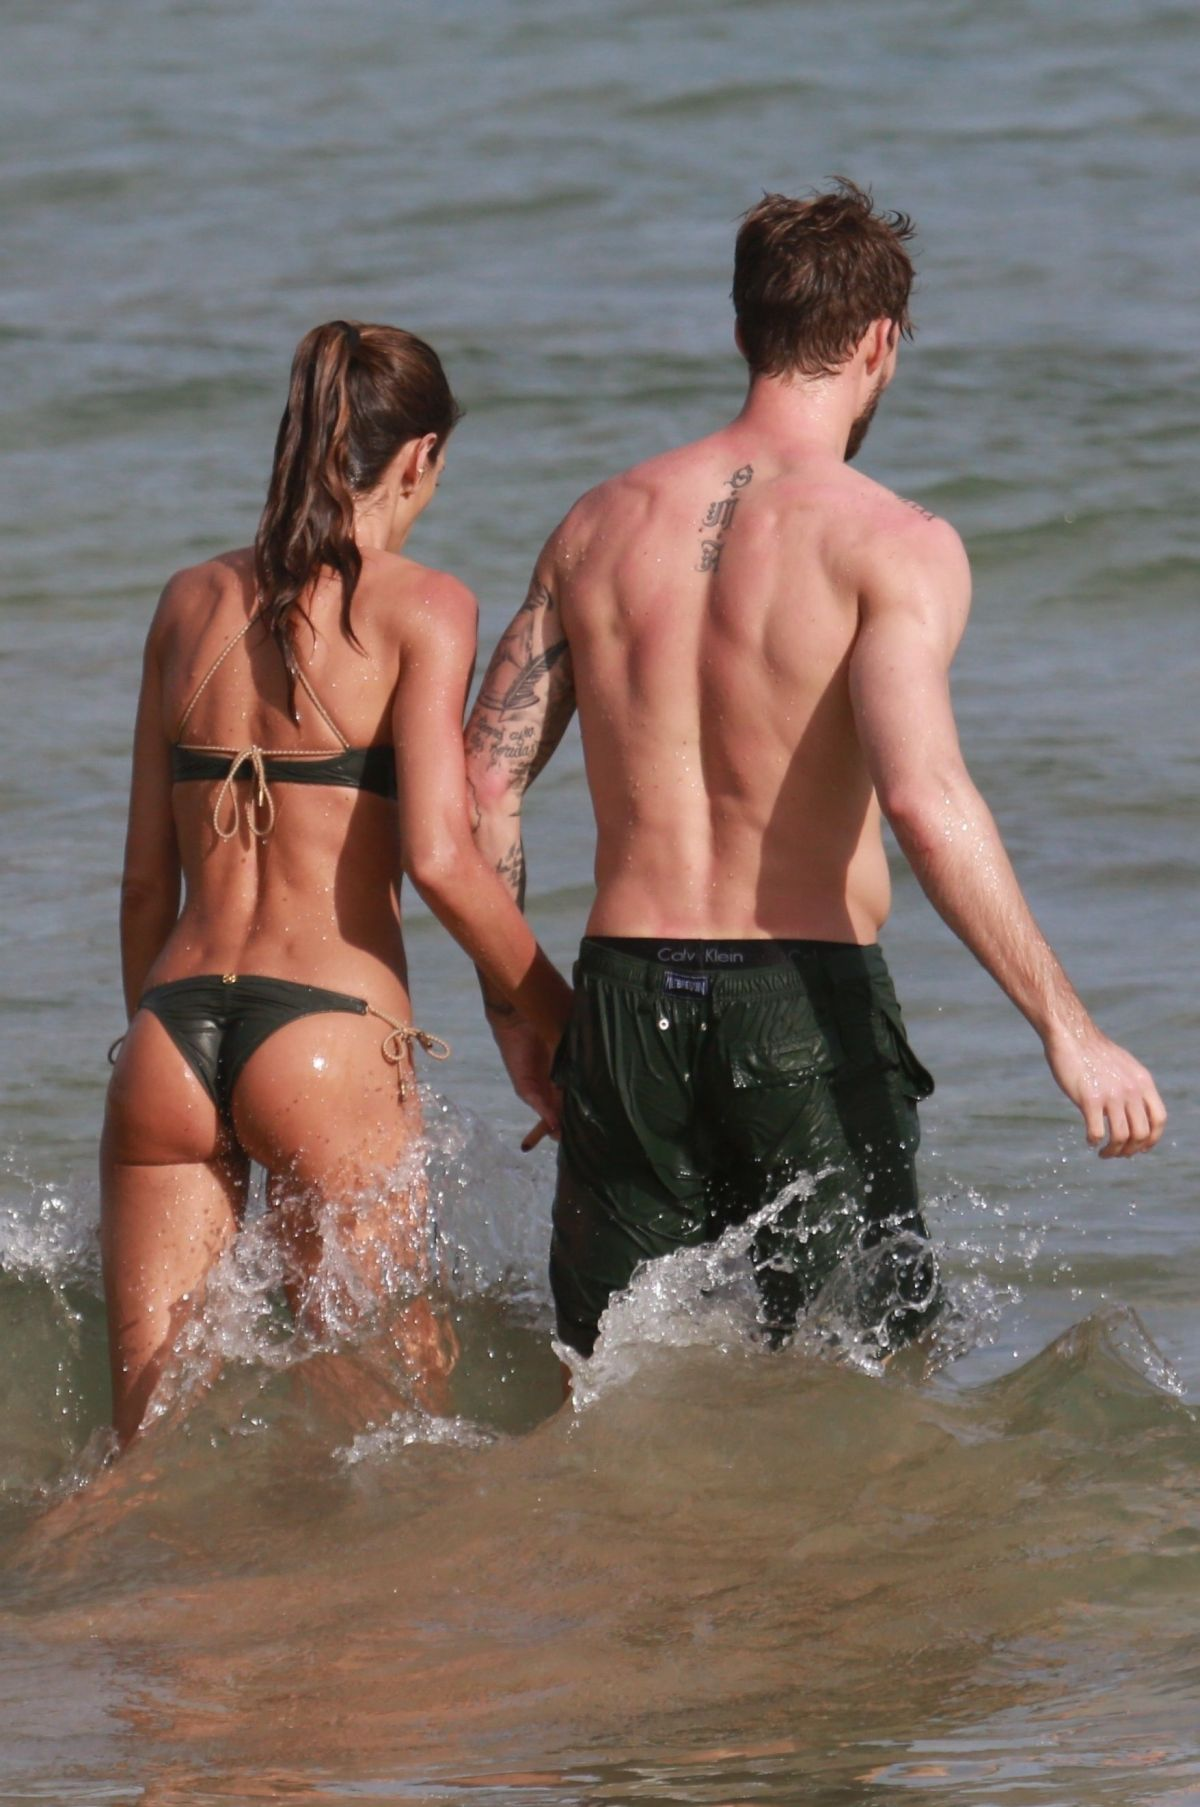 Izabel Goulart in Bikini with boyfriend on the beach in Recife Pic 4 of 35